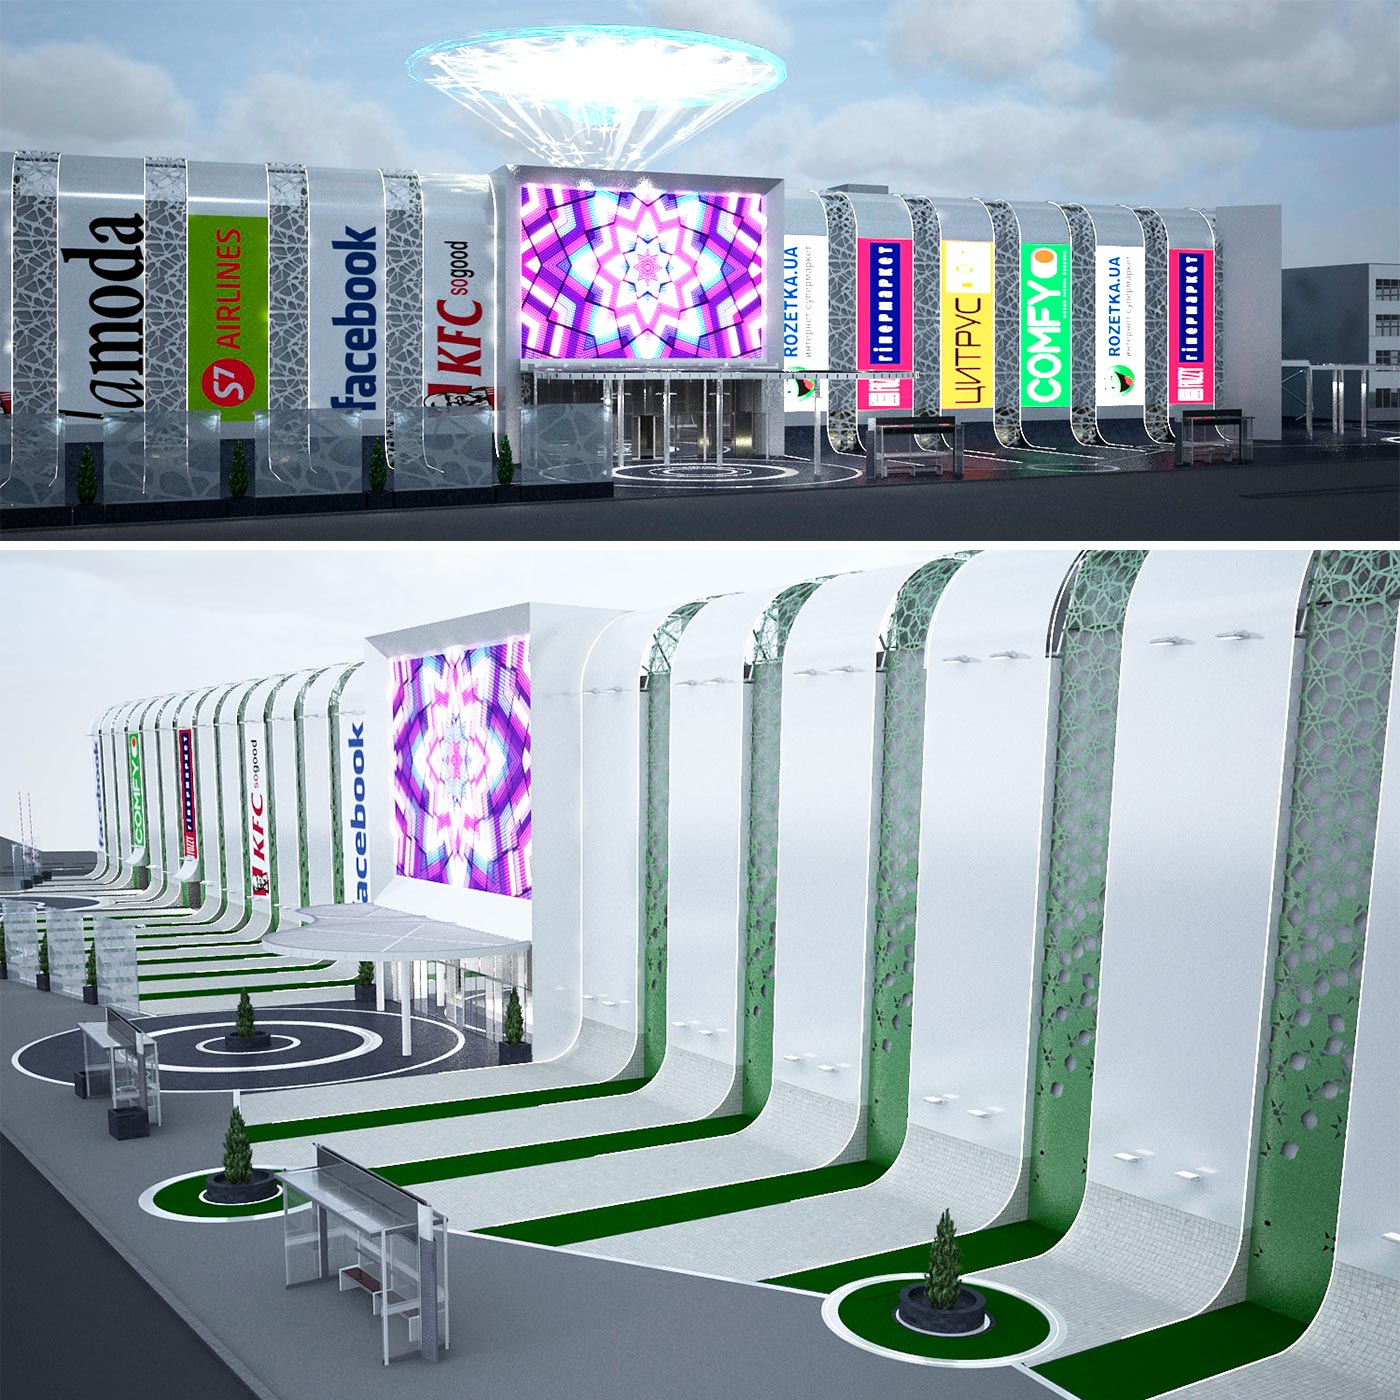 Design of a shopping center facade in 3d and visualization